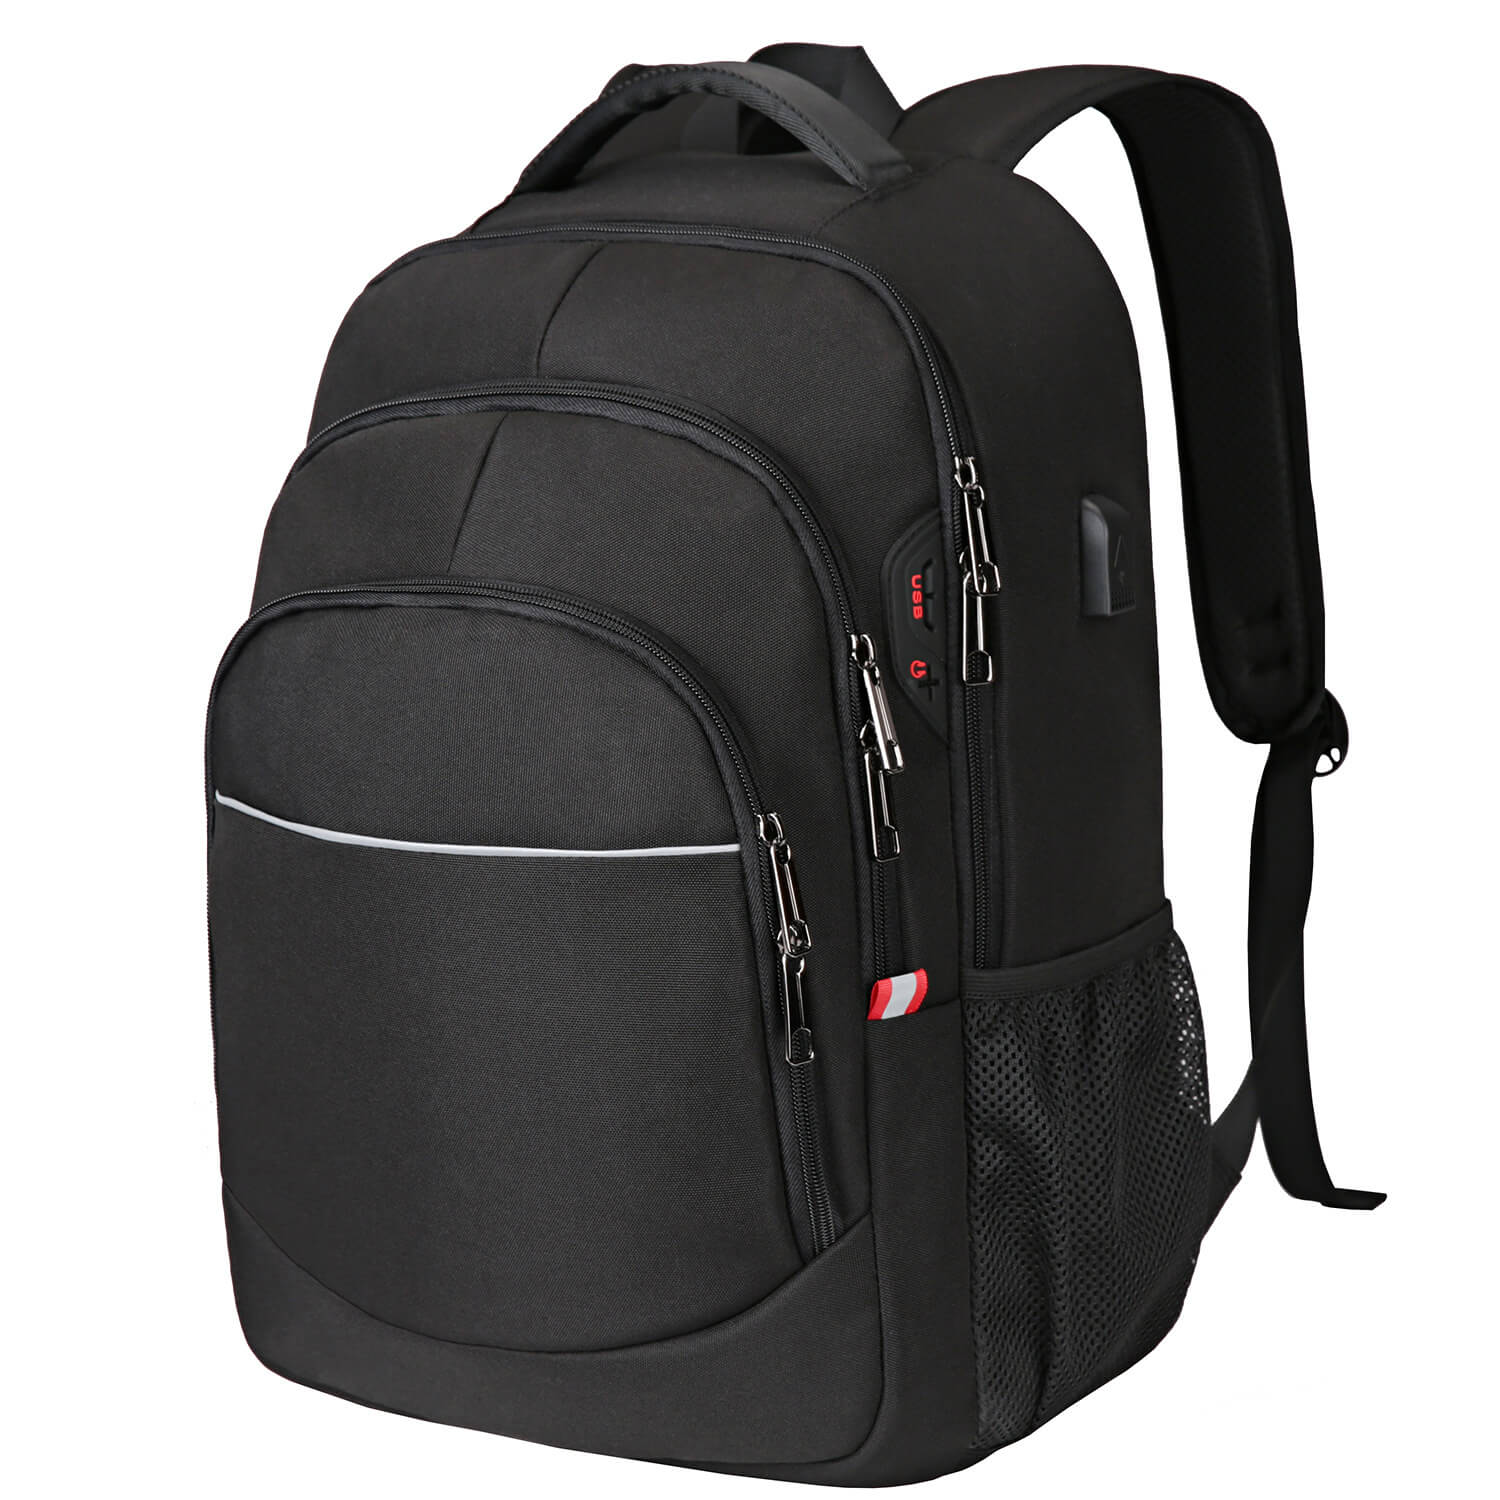 "Vbiger Multi-purpose Business Backpack 15.6"" Laptop Bag with FRID Pocket, Black"